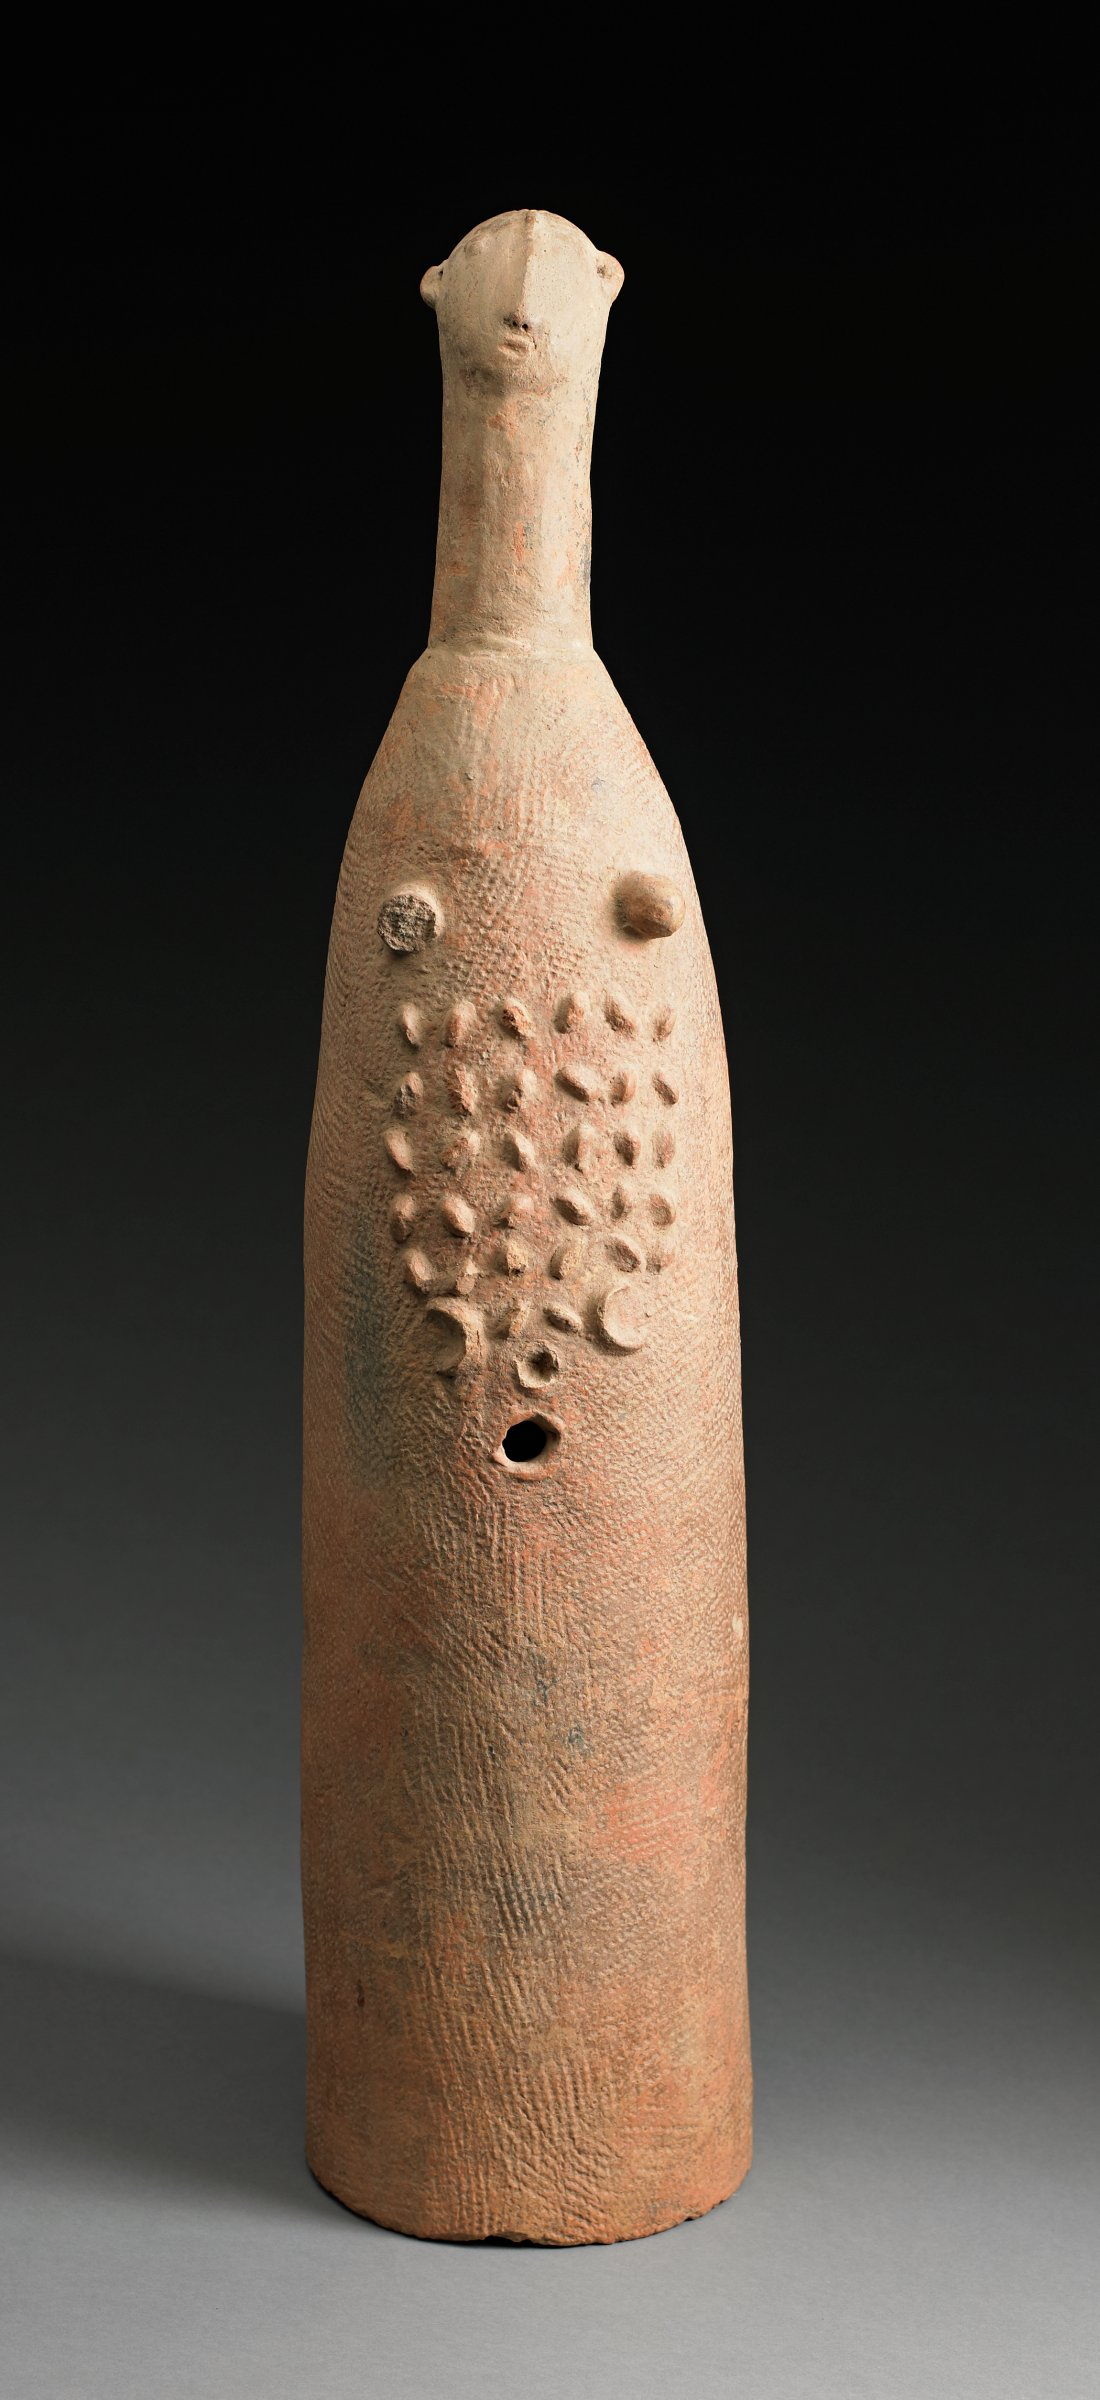 Tall cylindrical figure with long neck and human head has breasts, raised pattern on abdomen, and small round hole below pattern.